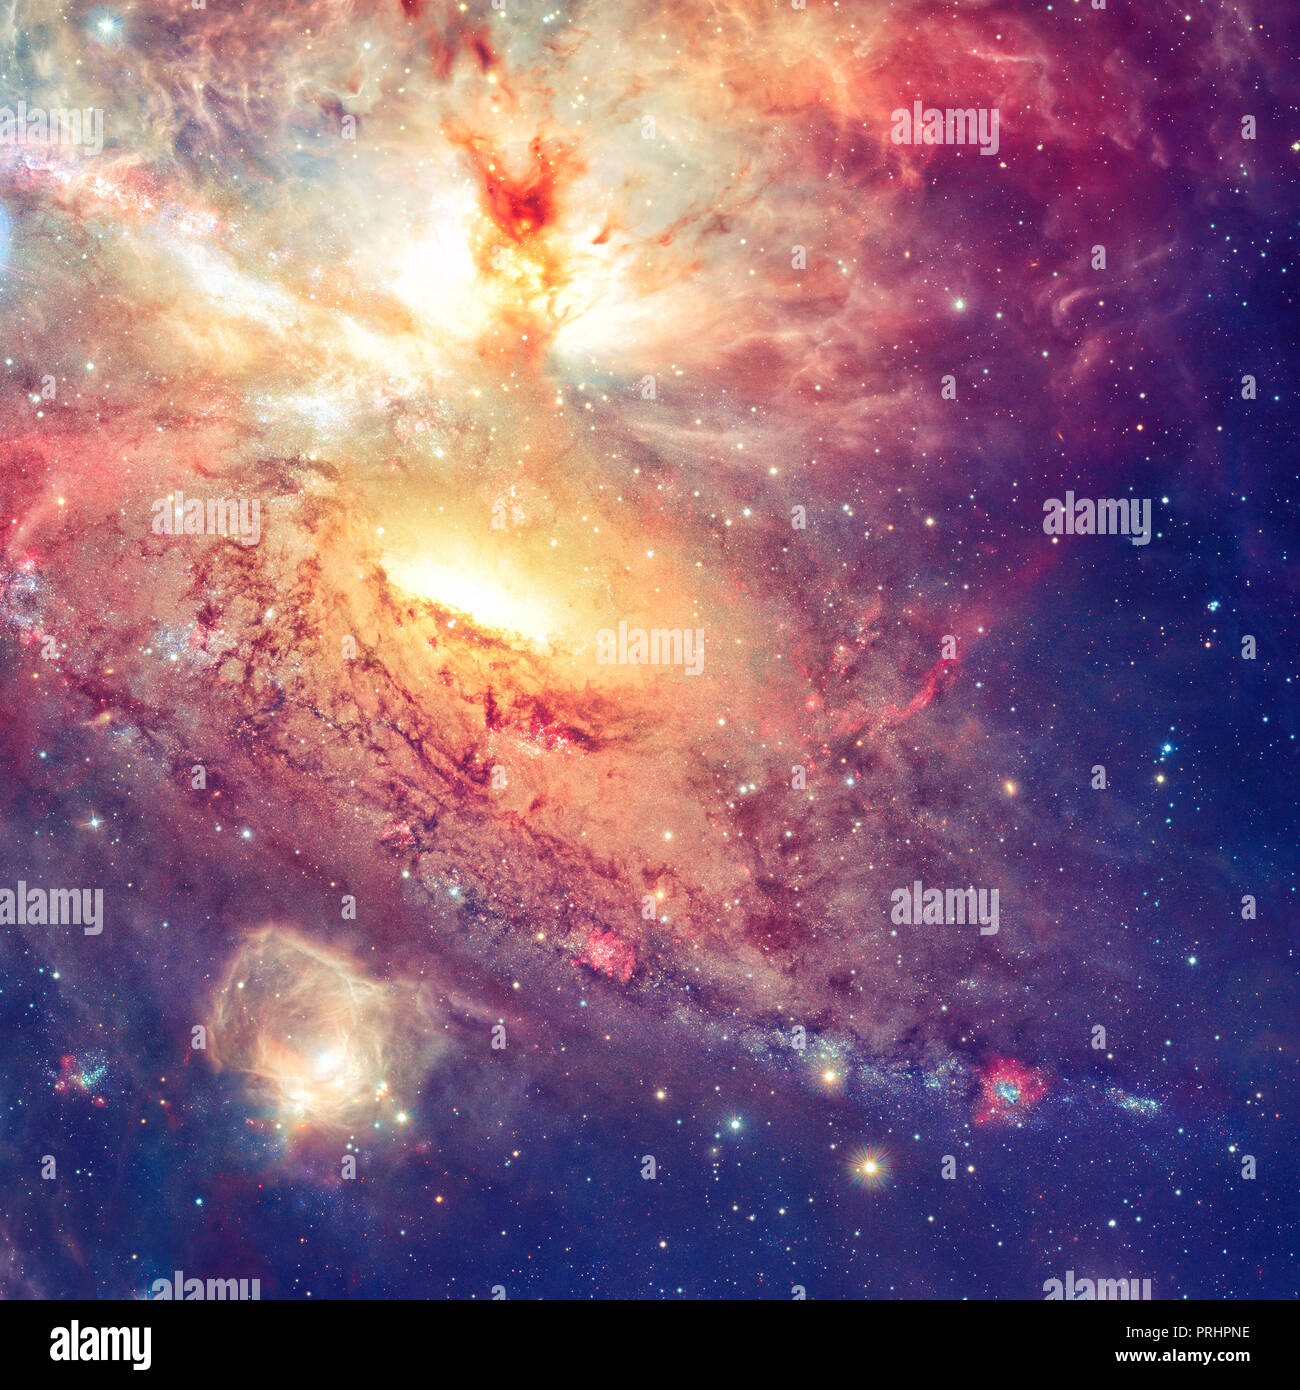 Star field and nebula in outer space - Stock Image